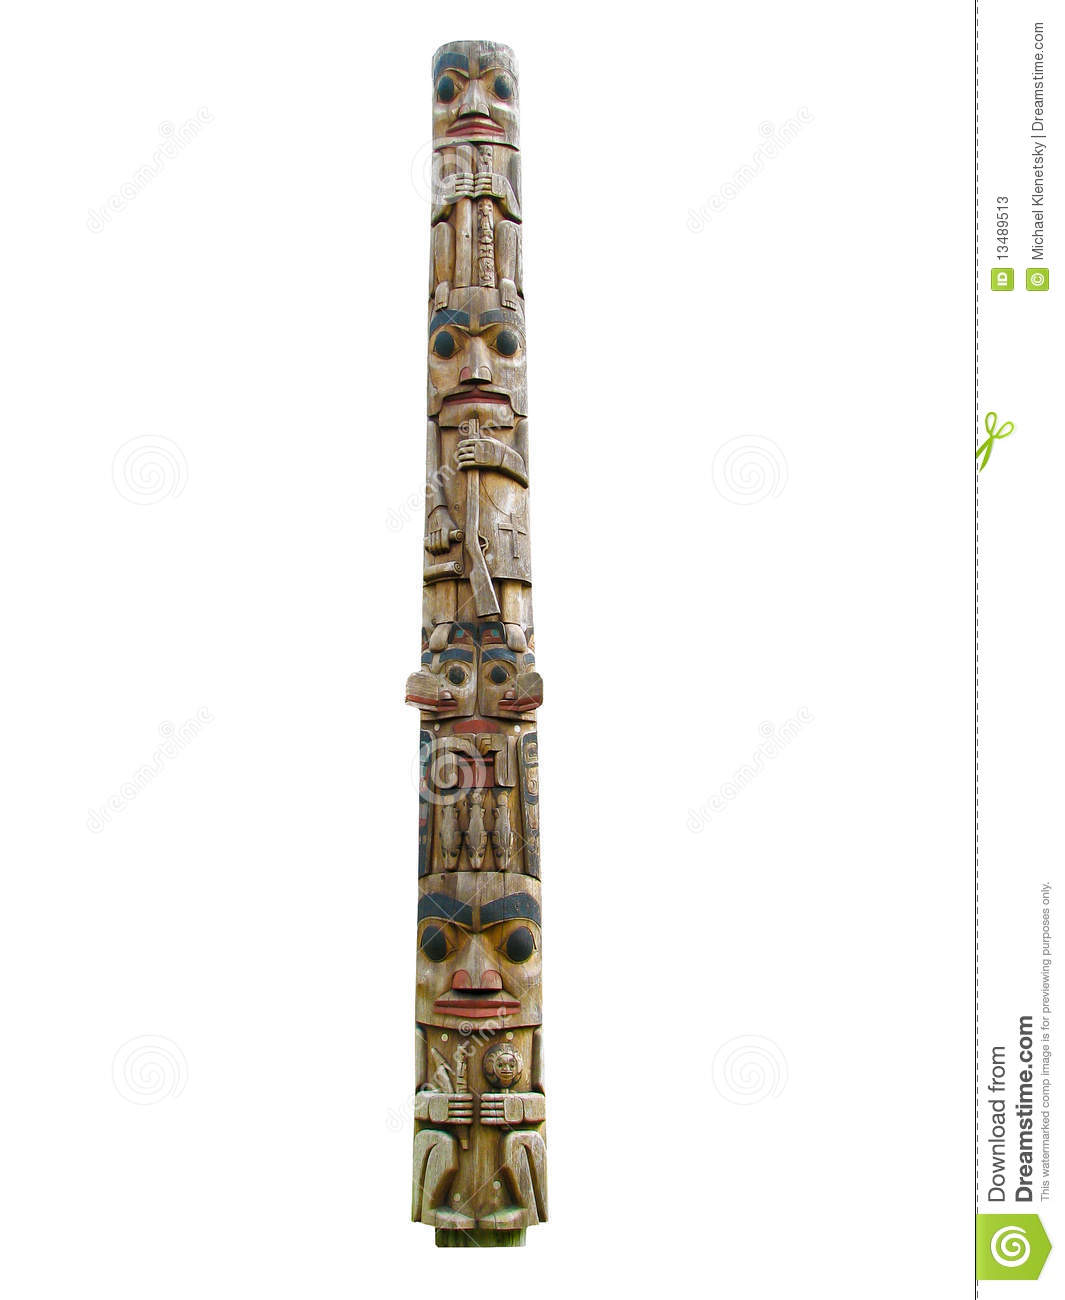 totem pole isolated on a white background.